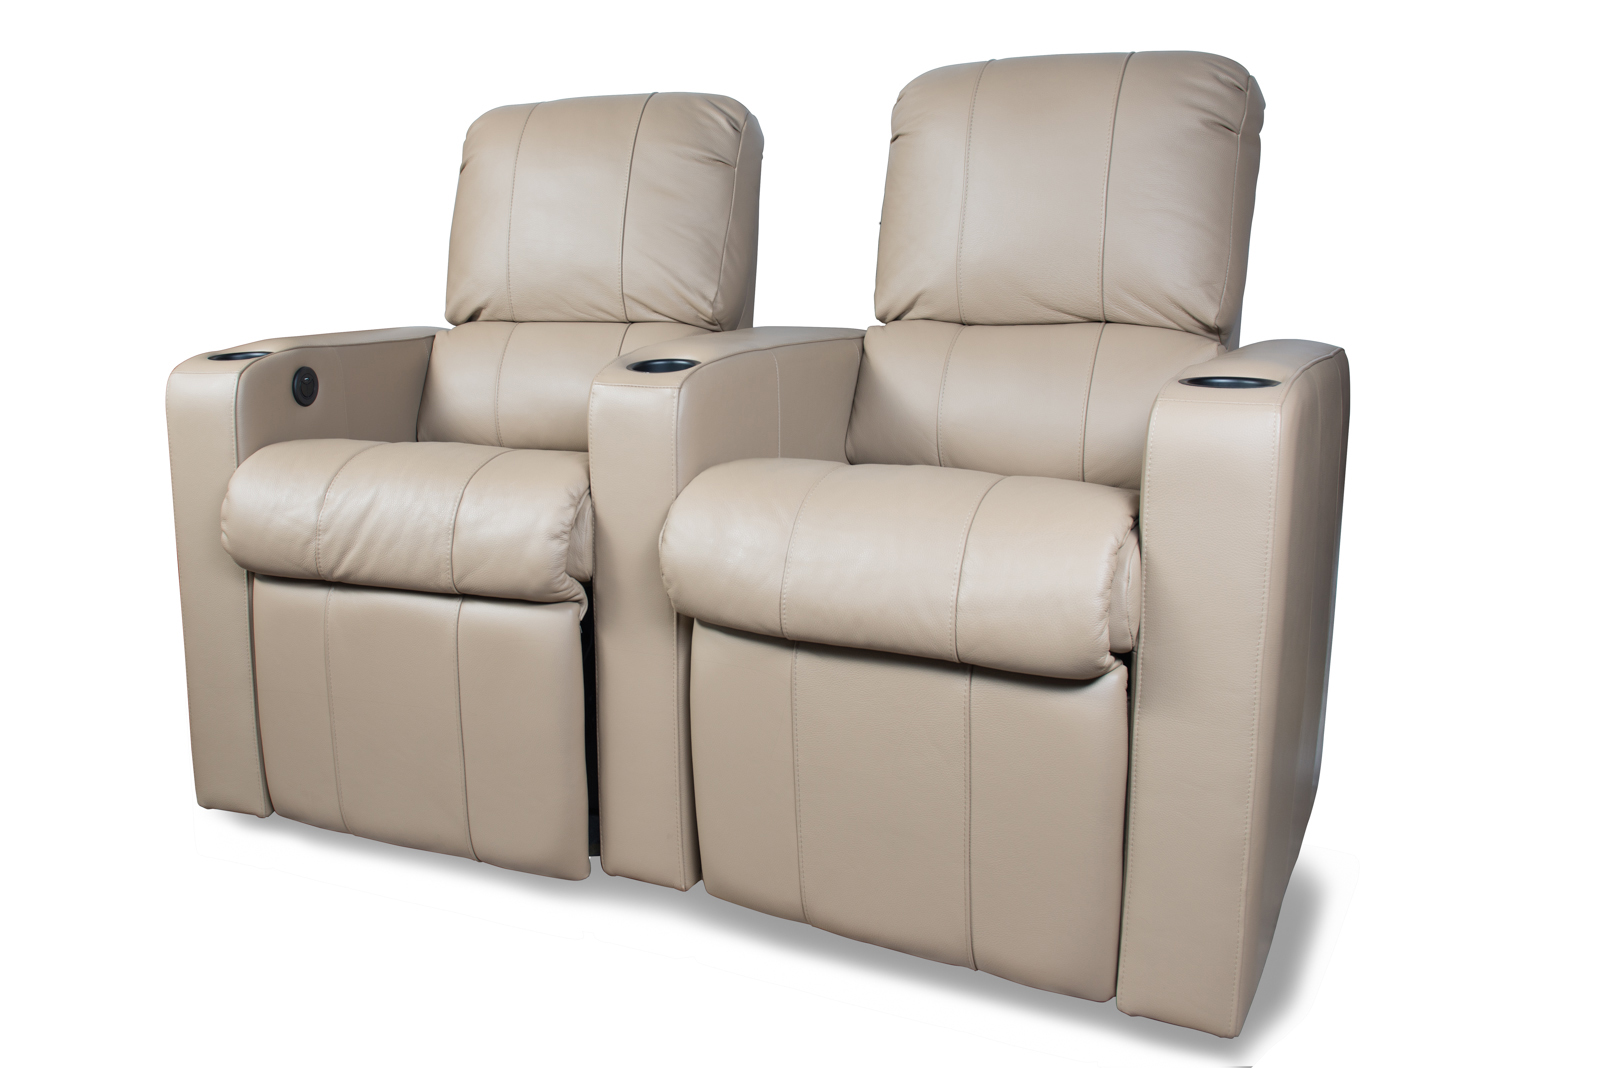 The Victory Home Theater Chair